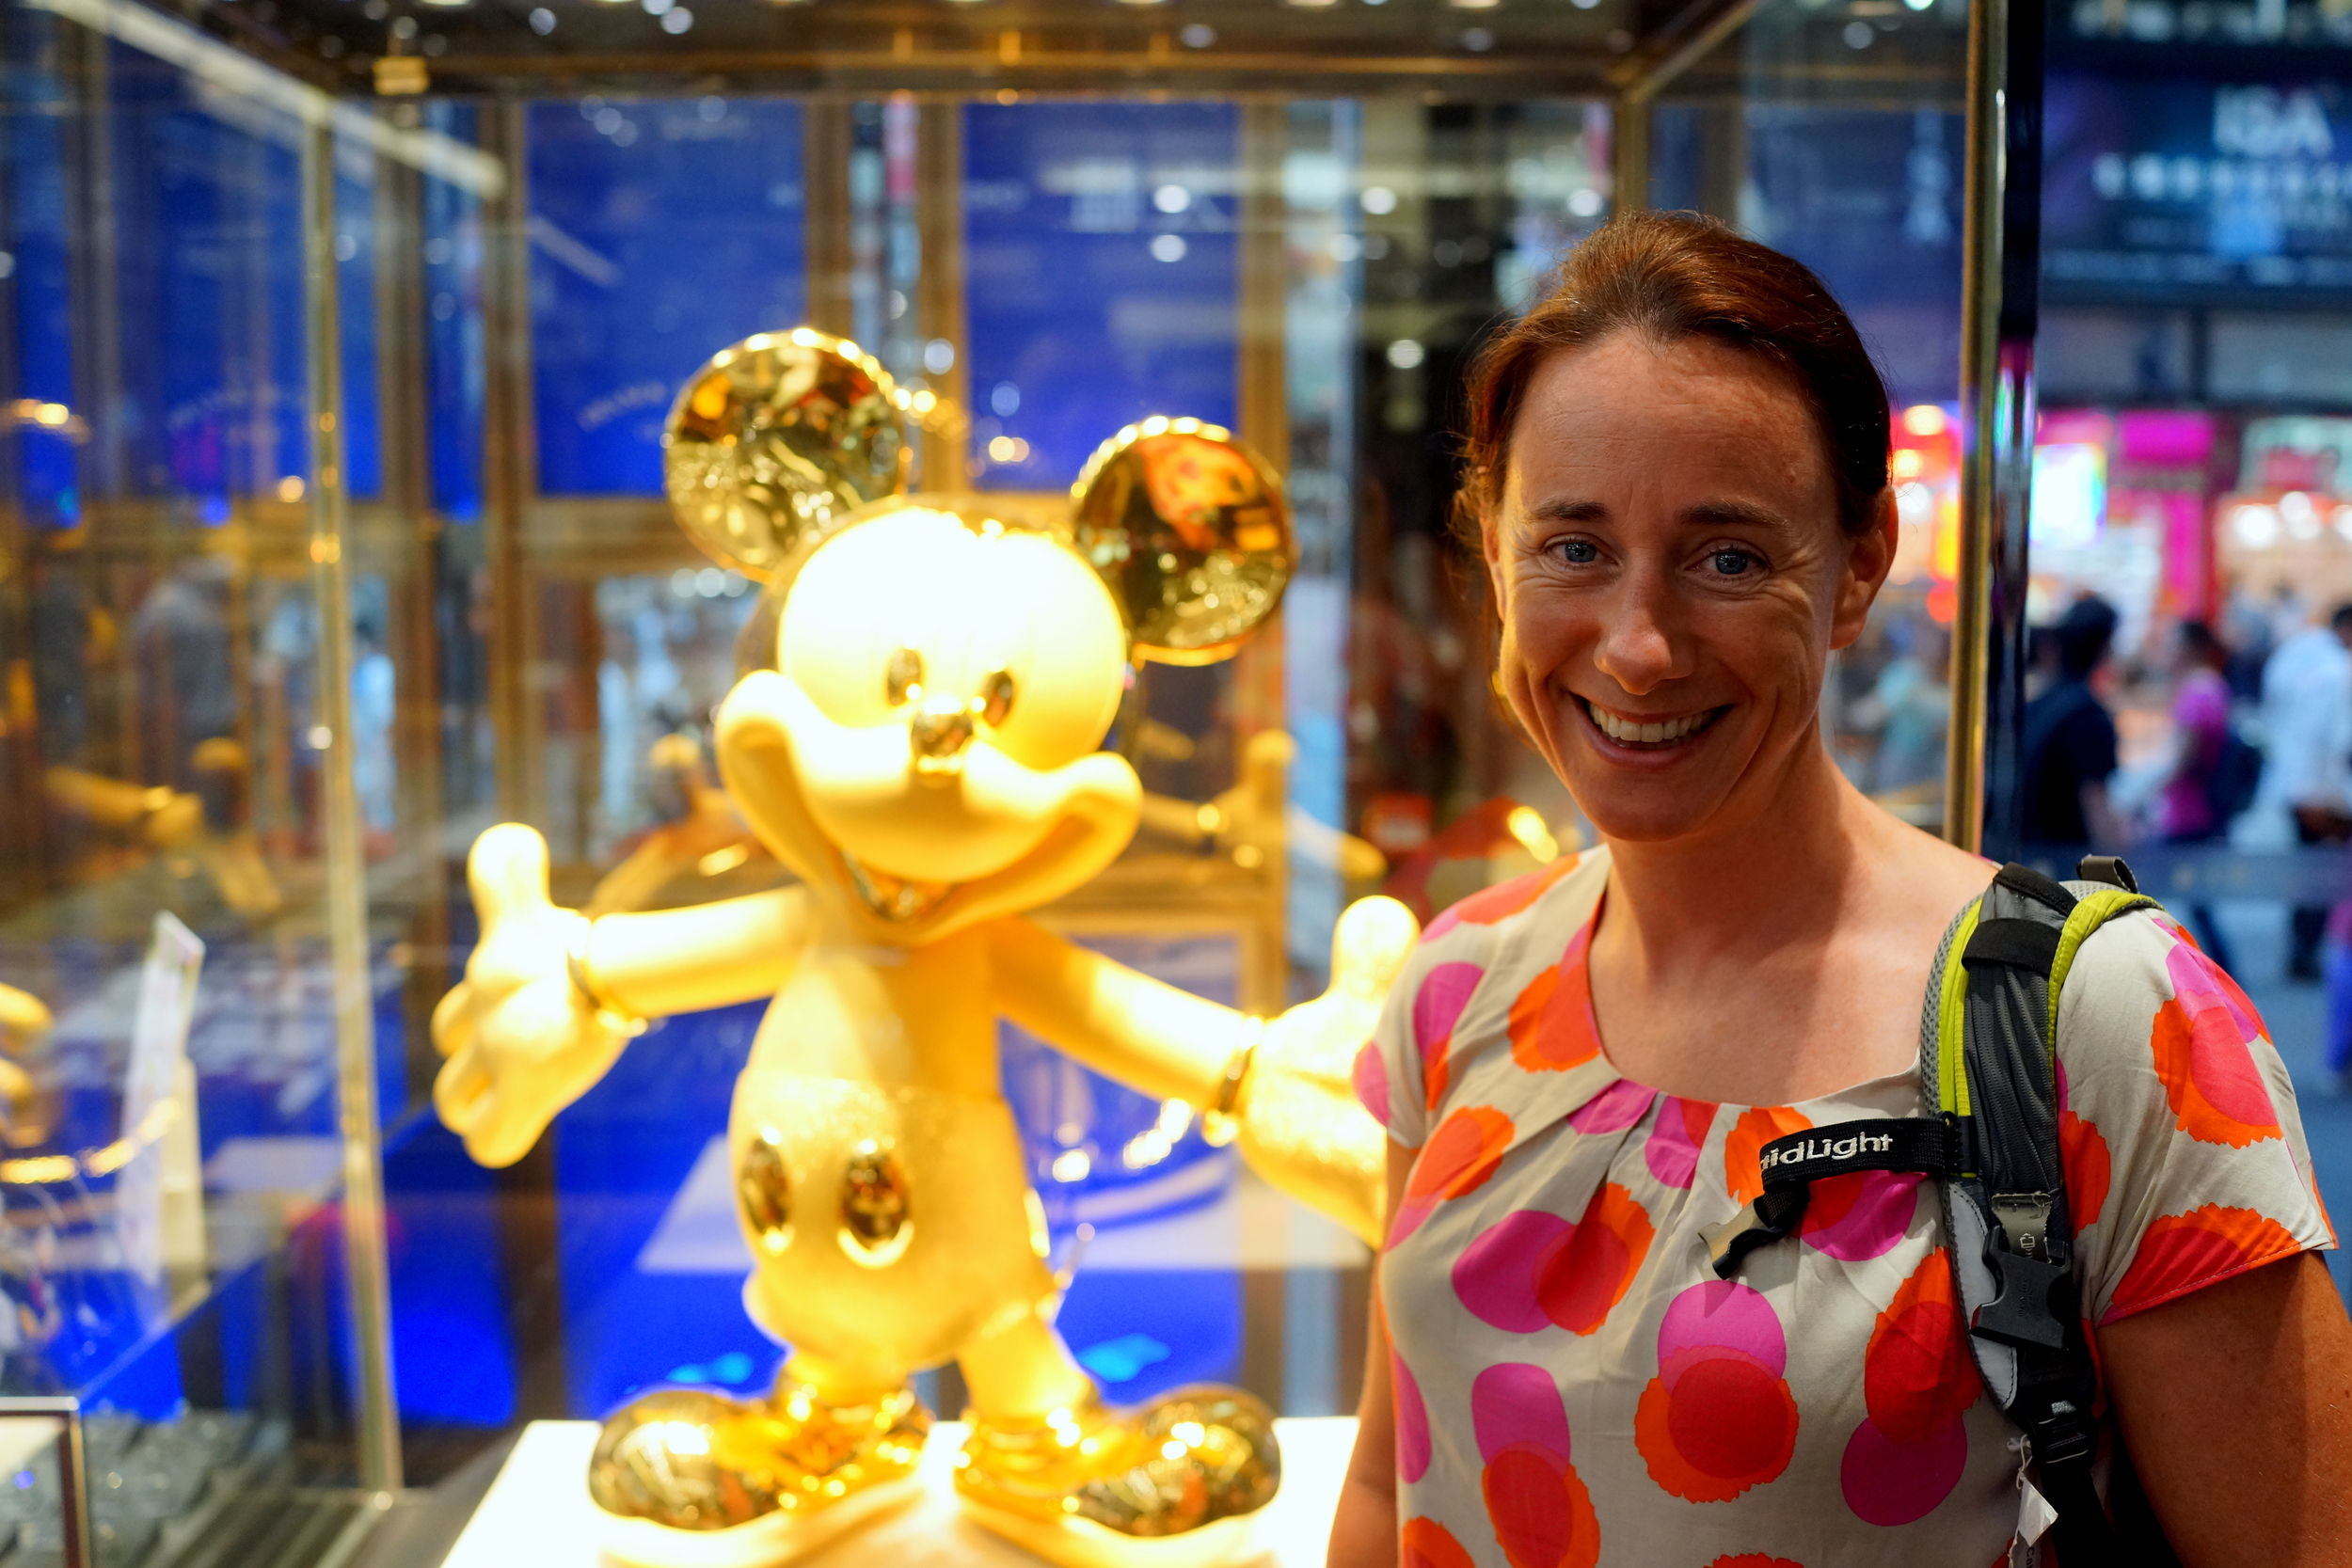 Meet Jax, Jax works for the British Government in Bangladesh... here she is sharing the spotlight with the 24k pure gold Mickey Mouse (10.58kg and US$460,000) in Chow Tai Fook on Nathan Road